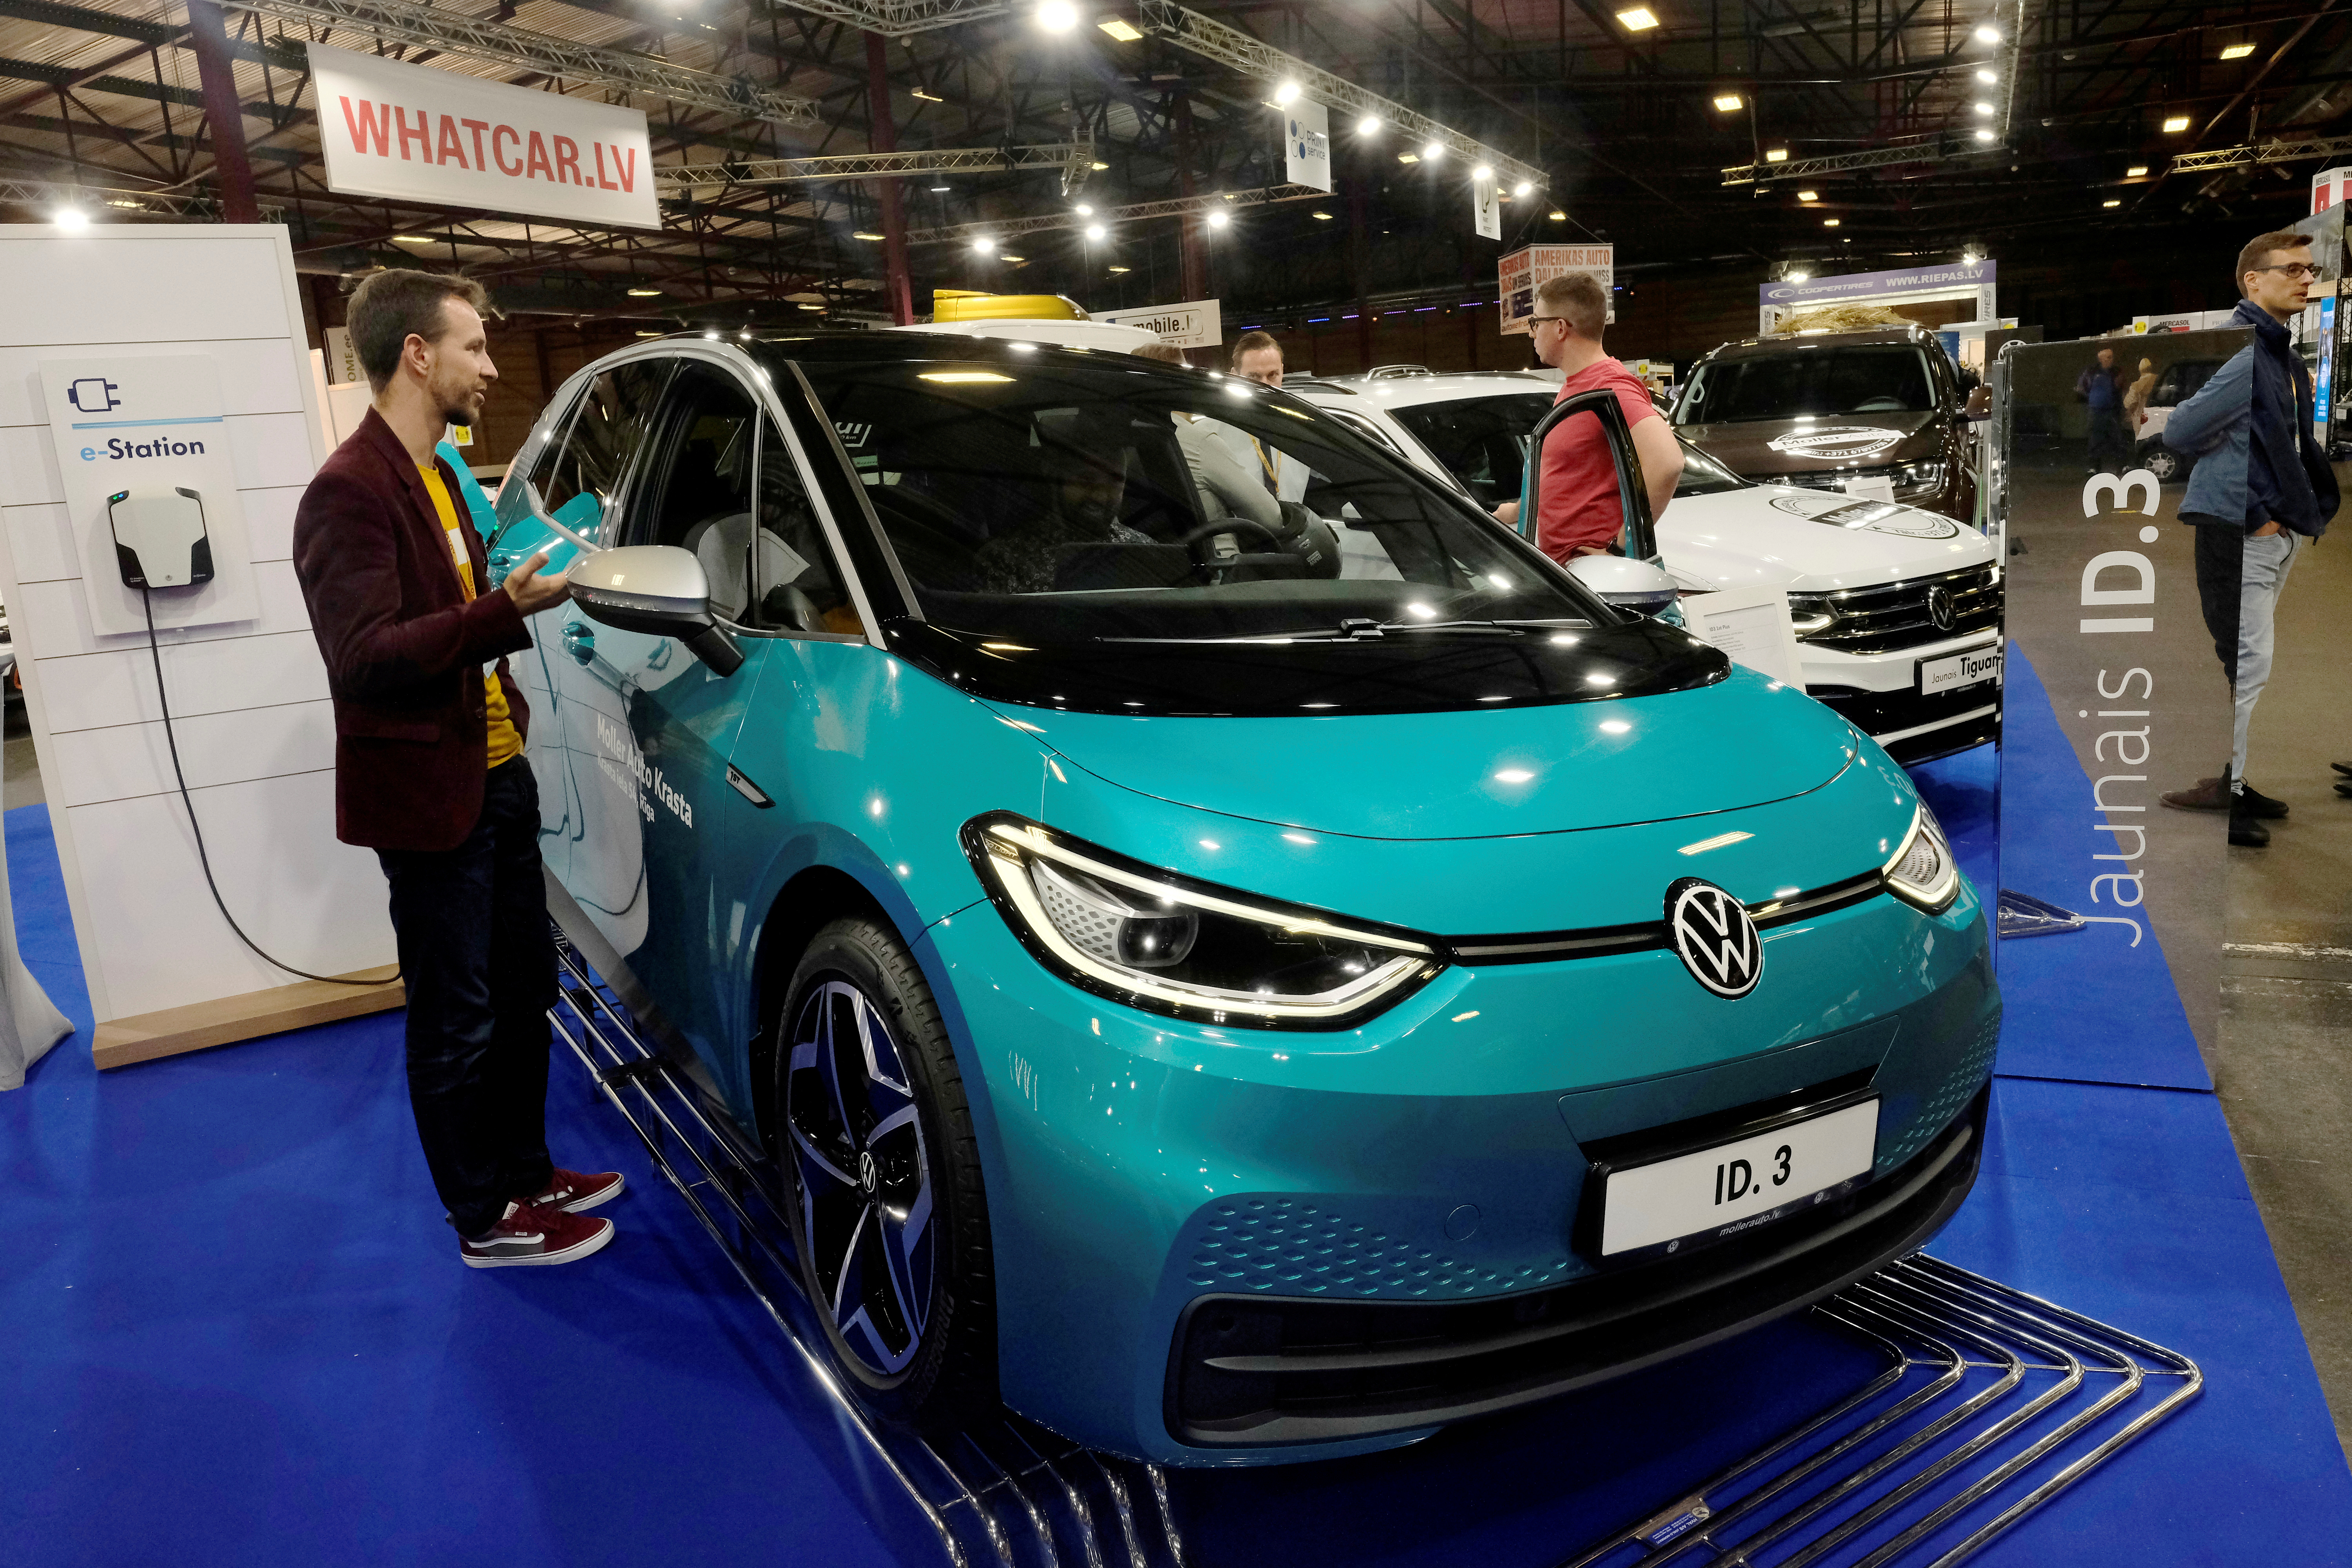 People gather next to the Volkswagen ID.3 electric car during the International Motor Show in Riga, Latvia September 25, 2020. REUTERS/Ints Kalnins/File Photo